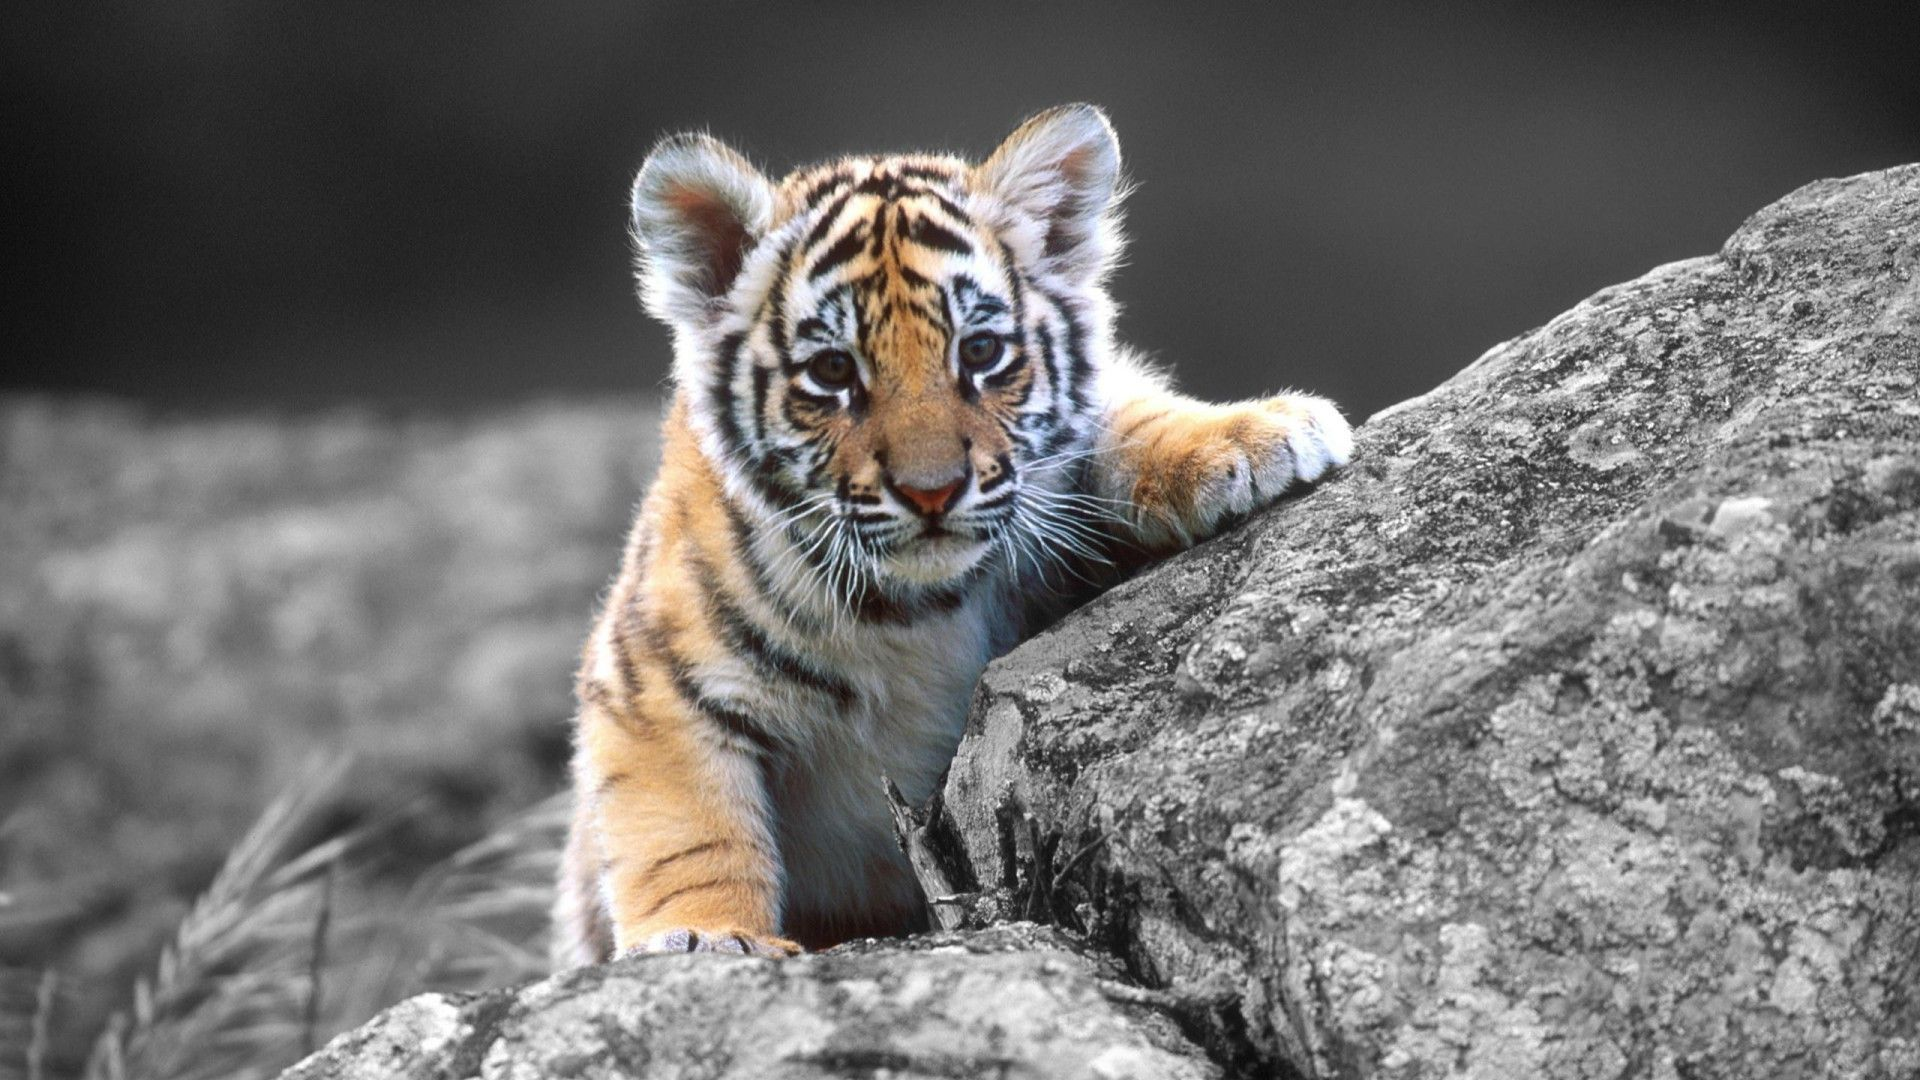 baby tiger wallpaper  Baby White Tiger Wallpapers Wallpaper | HD Wallpapers | Pinterest ...